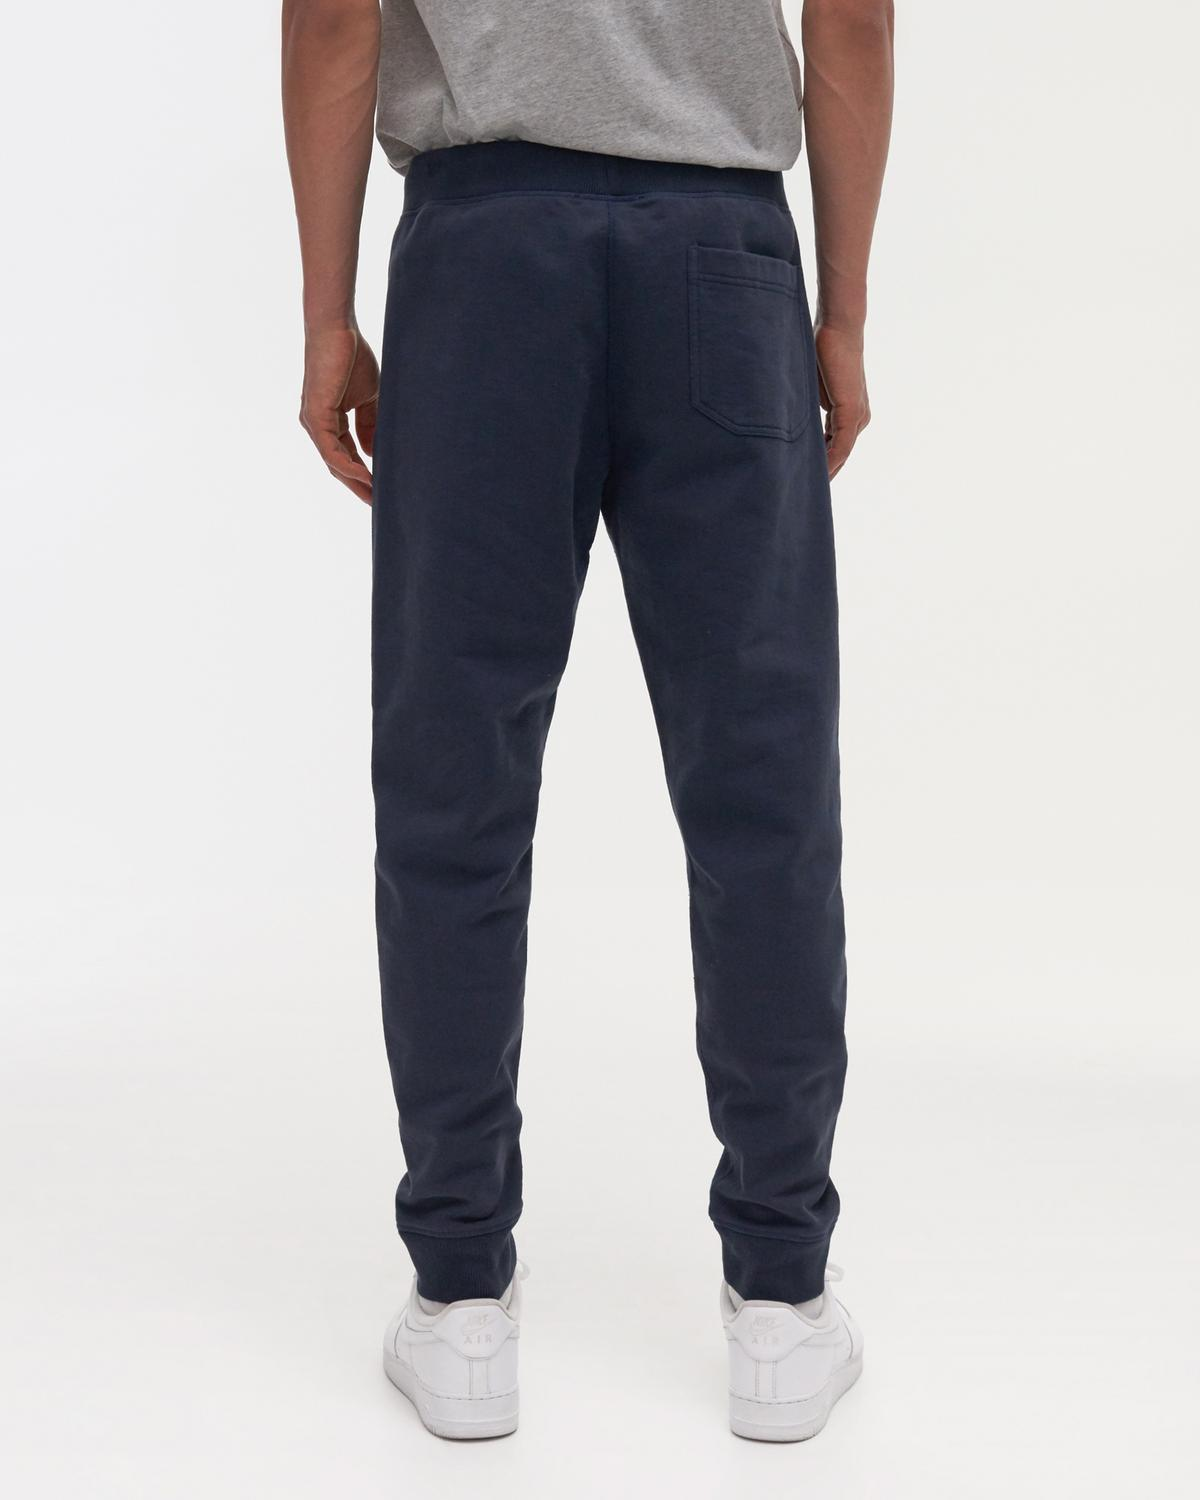 Industry Masc Sweatpant